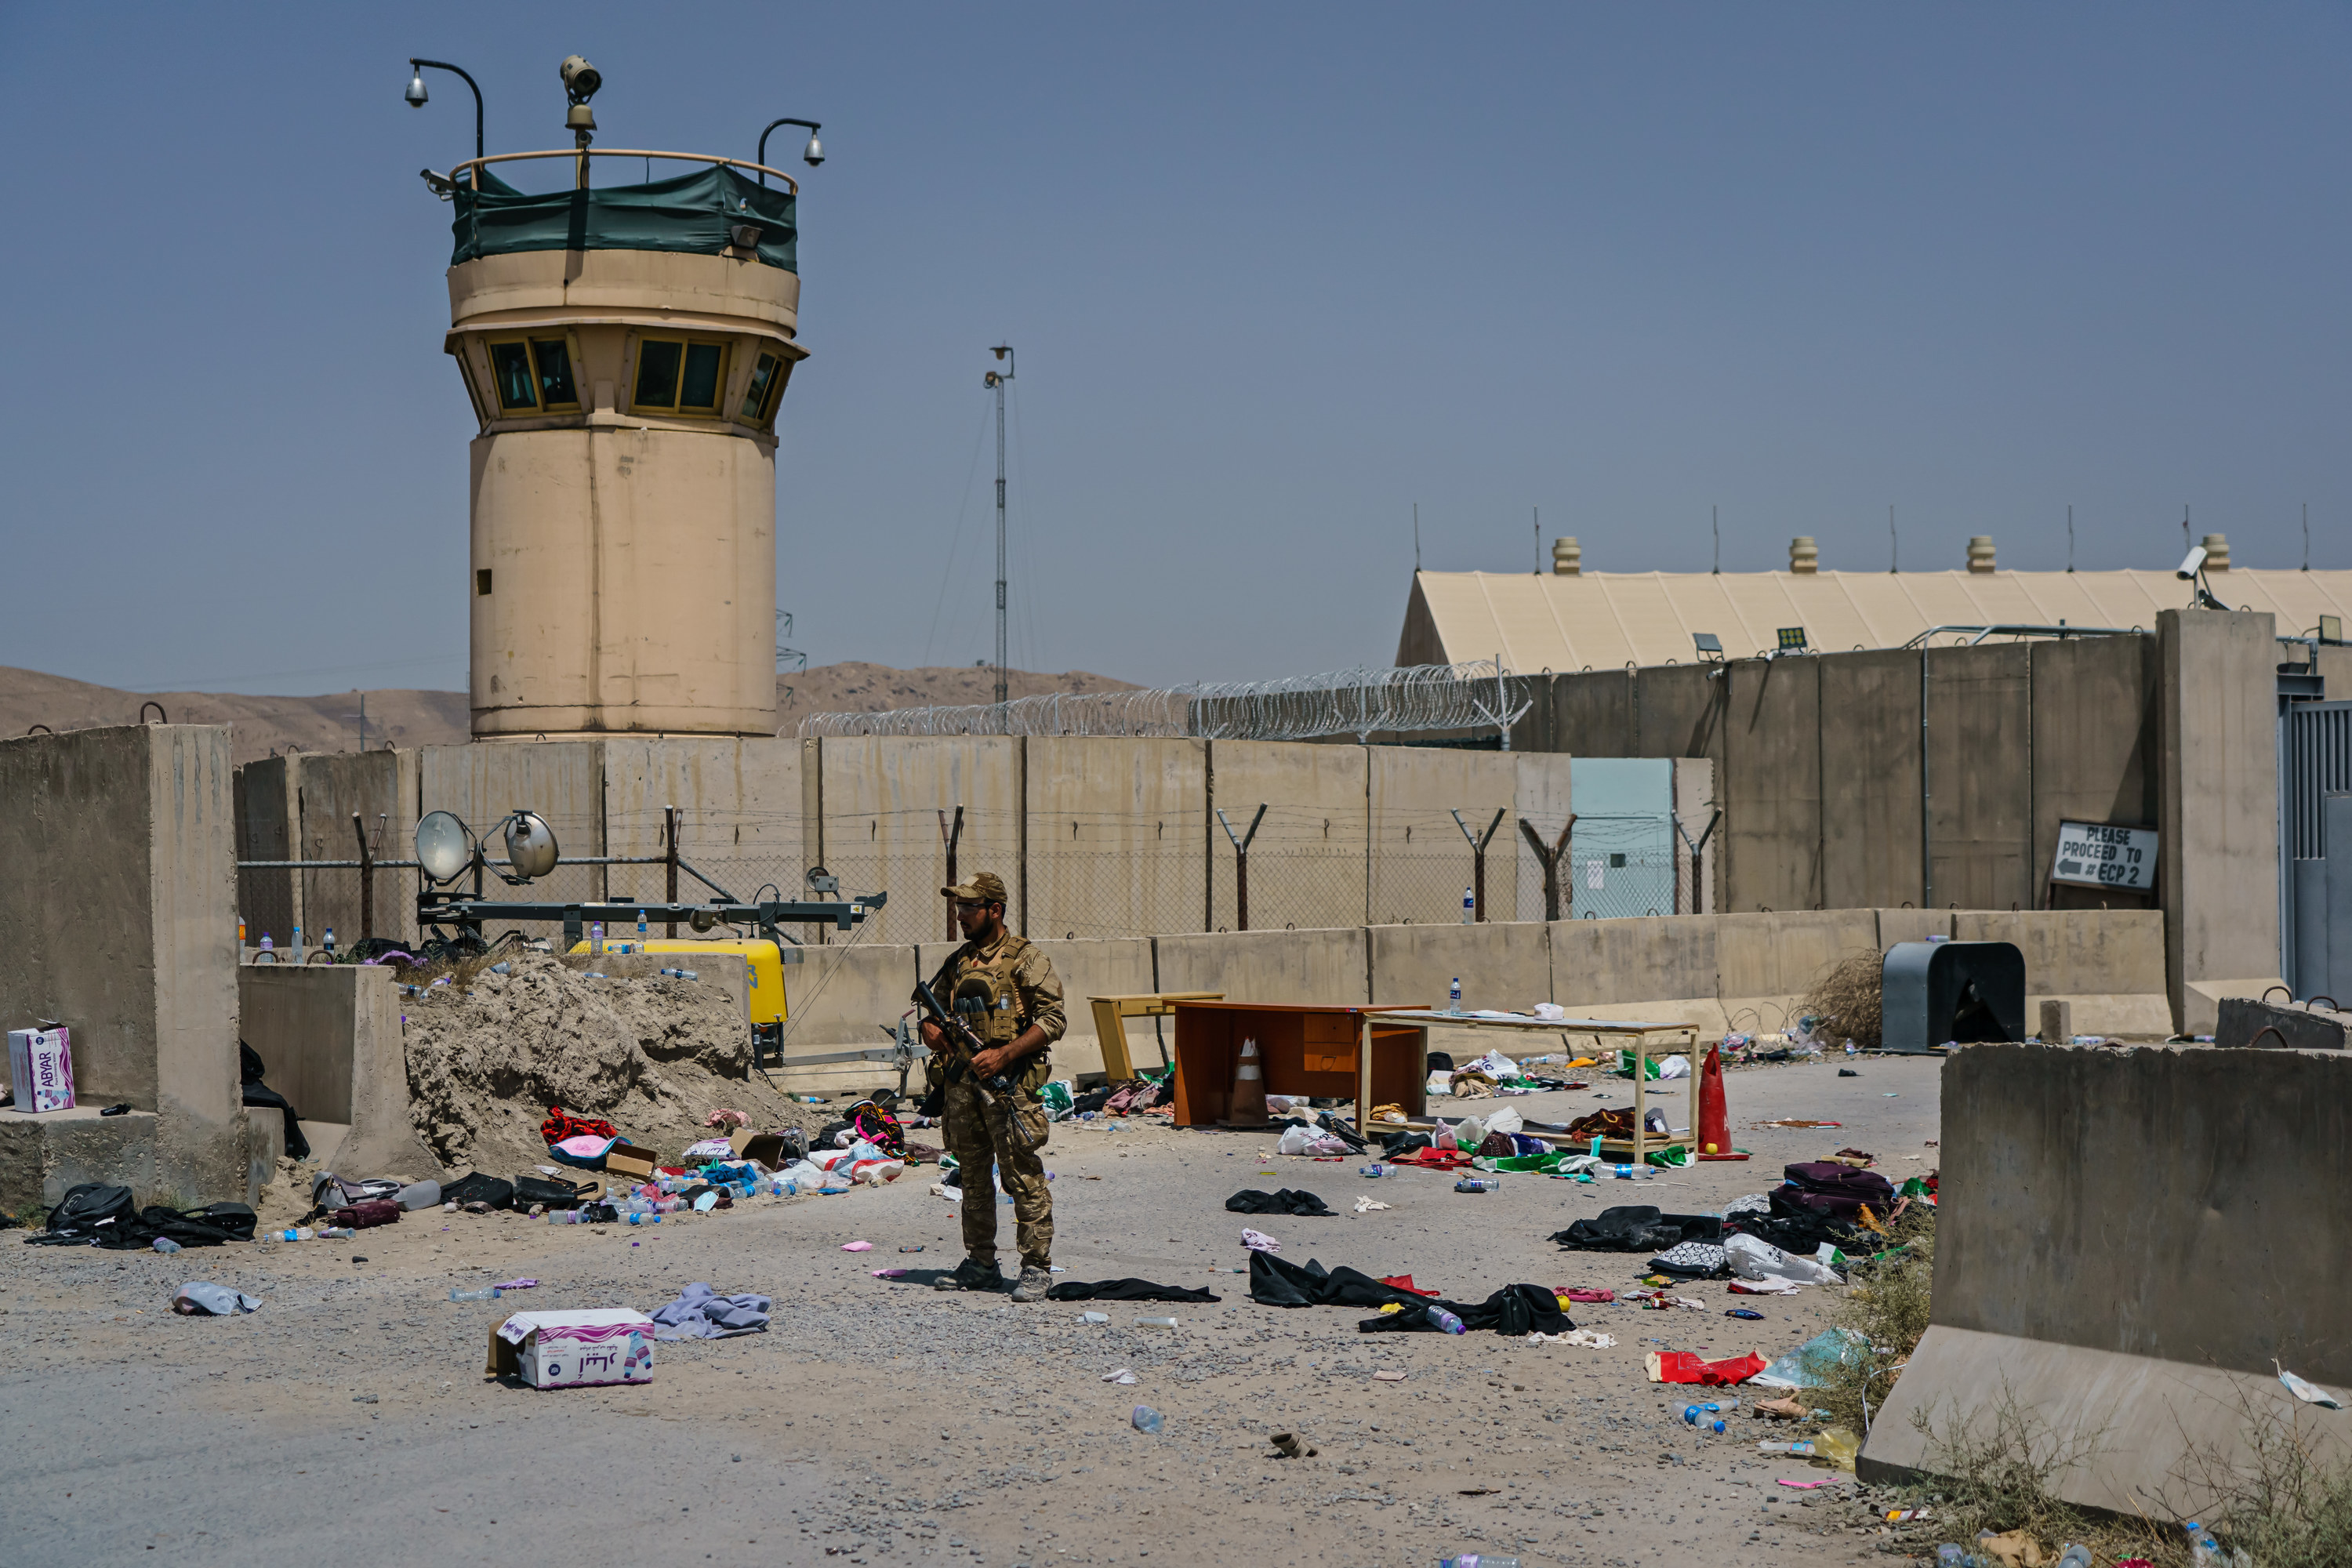 A soldier is surrounded by belongings and debris as he stands guard outside an airport